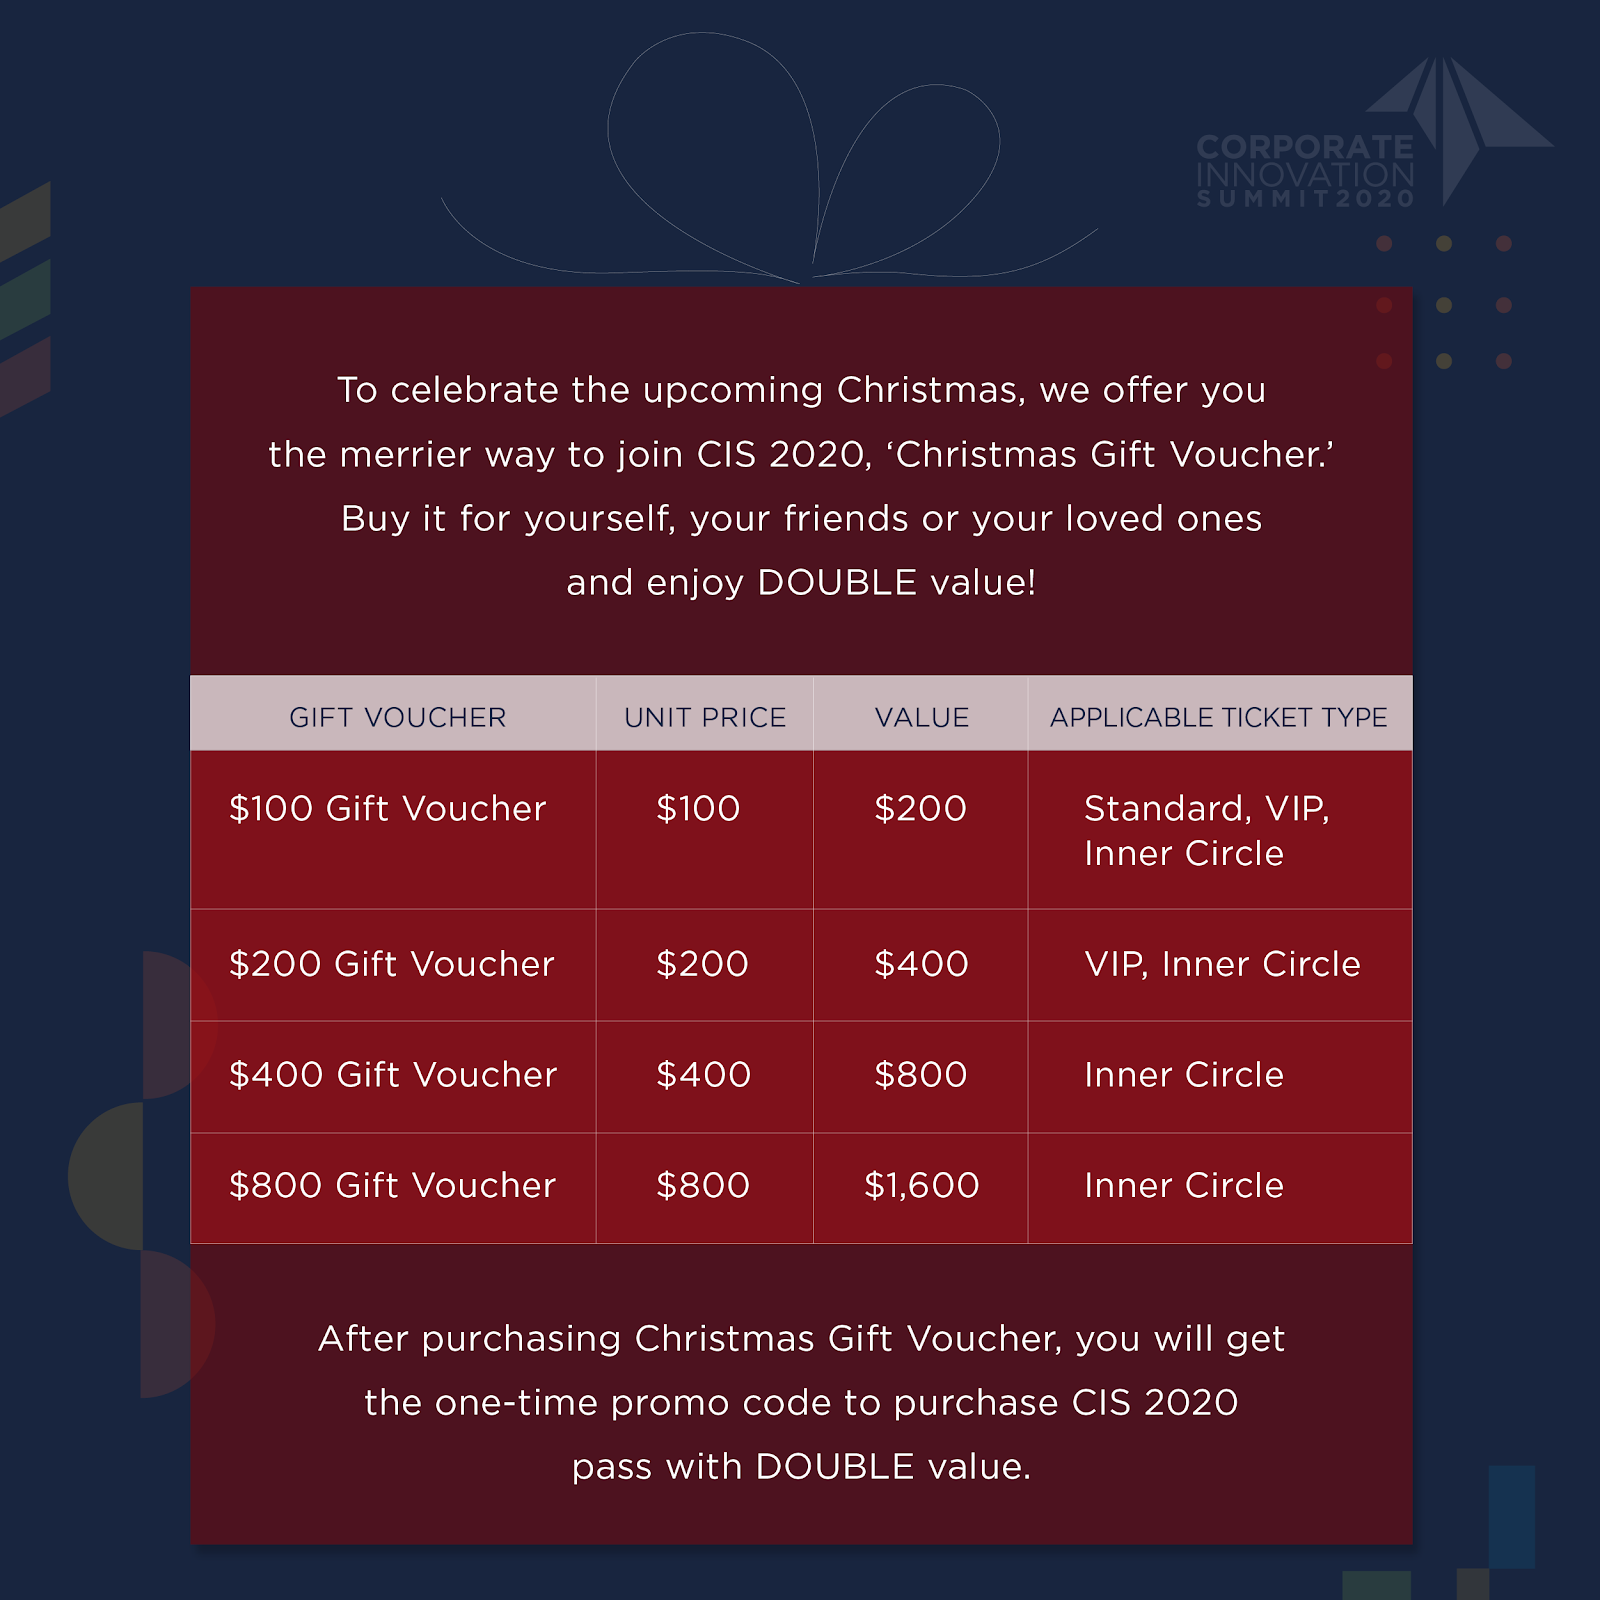 Another Christmas Here With You 2020 Experience is the best gift for Christmas. Here is the Merrier Way